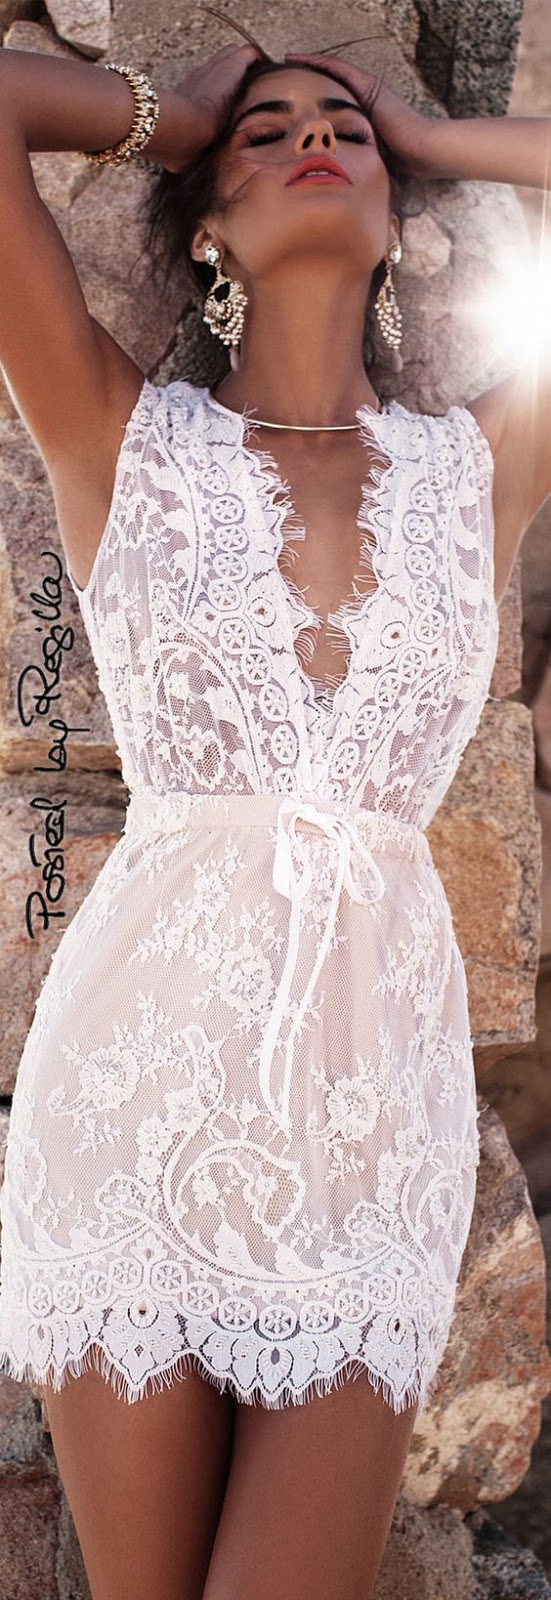 Dresses To Wear To A Wedding #dresses